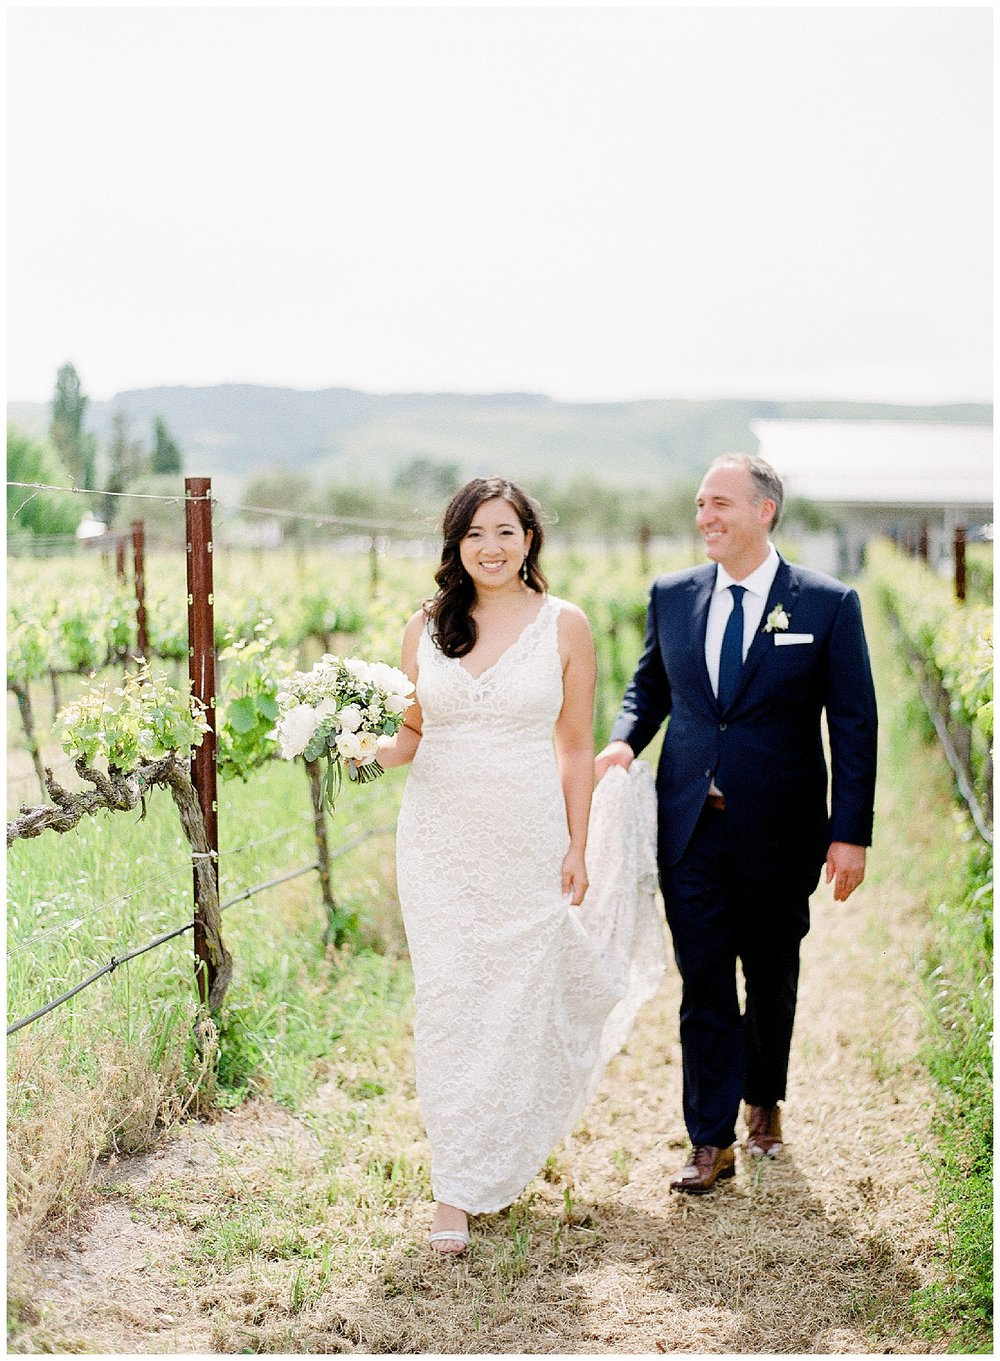 Janine_Licare_Photography_San_Francisco_Wedding_Photographer_Carneros_Tyge_Williams_Sonoma_Napa_0062.jpg